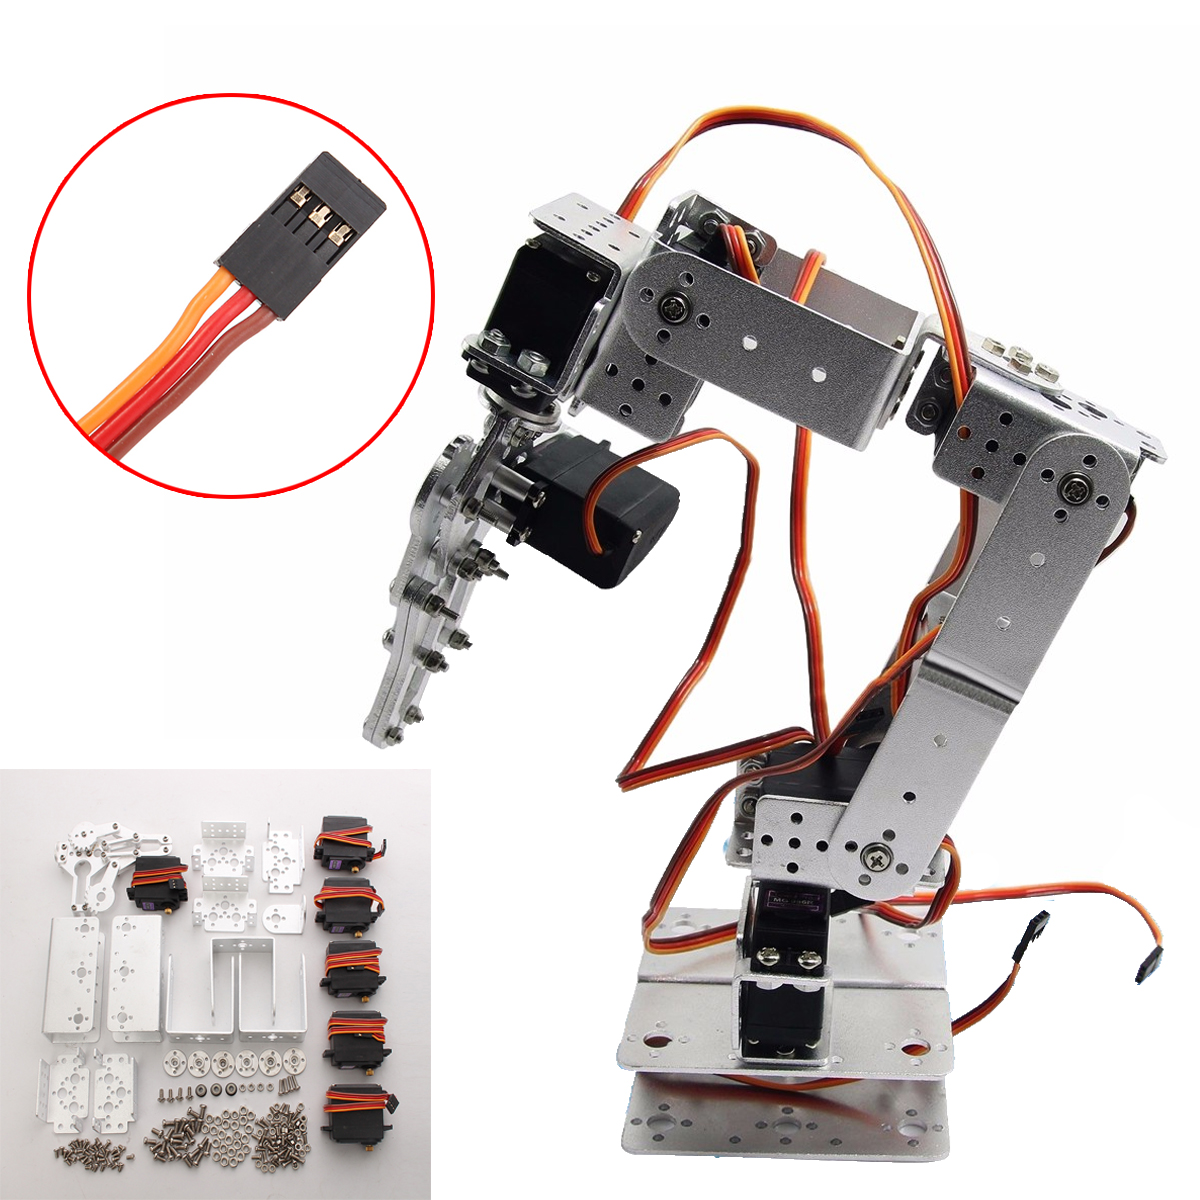 Aluminium Robot 6 DOF Arm Mechanical Robotic Arm Clamp Claw Mount Kit w/Servos Servo Horn for Arduino-Silver Action Toy Figure цена